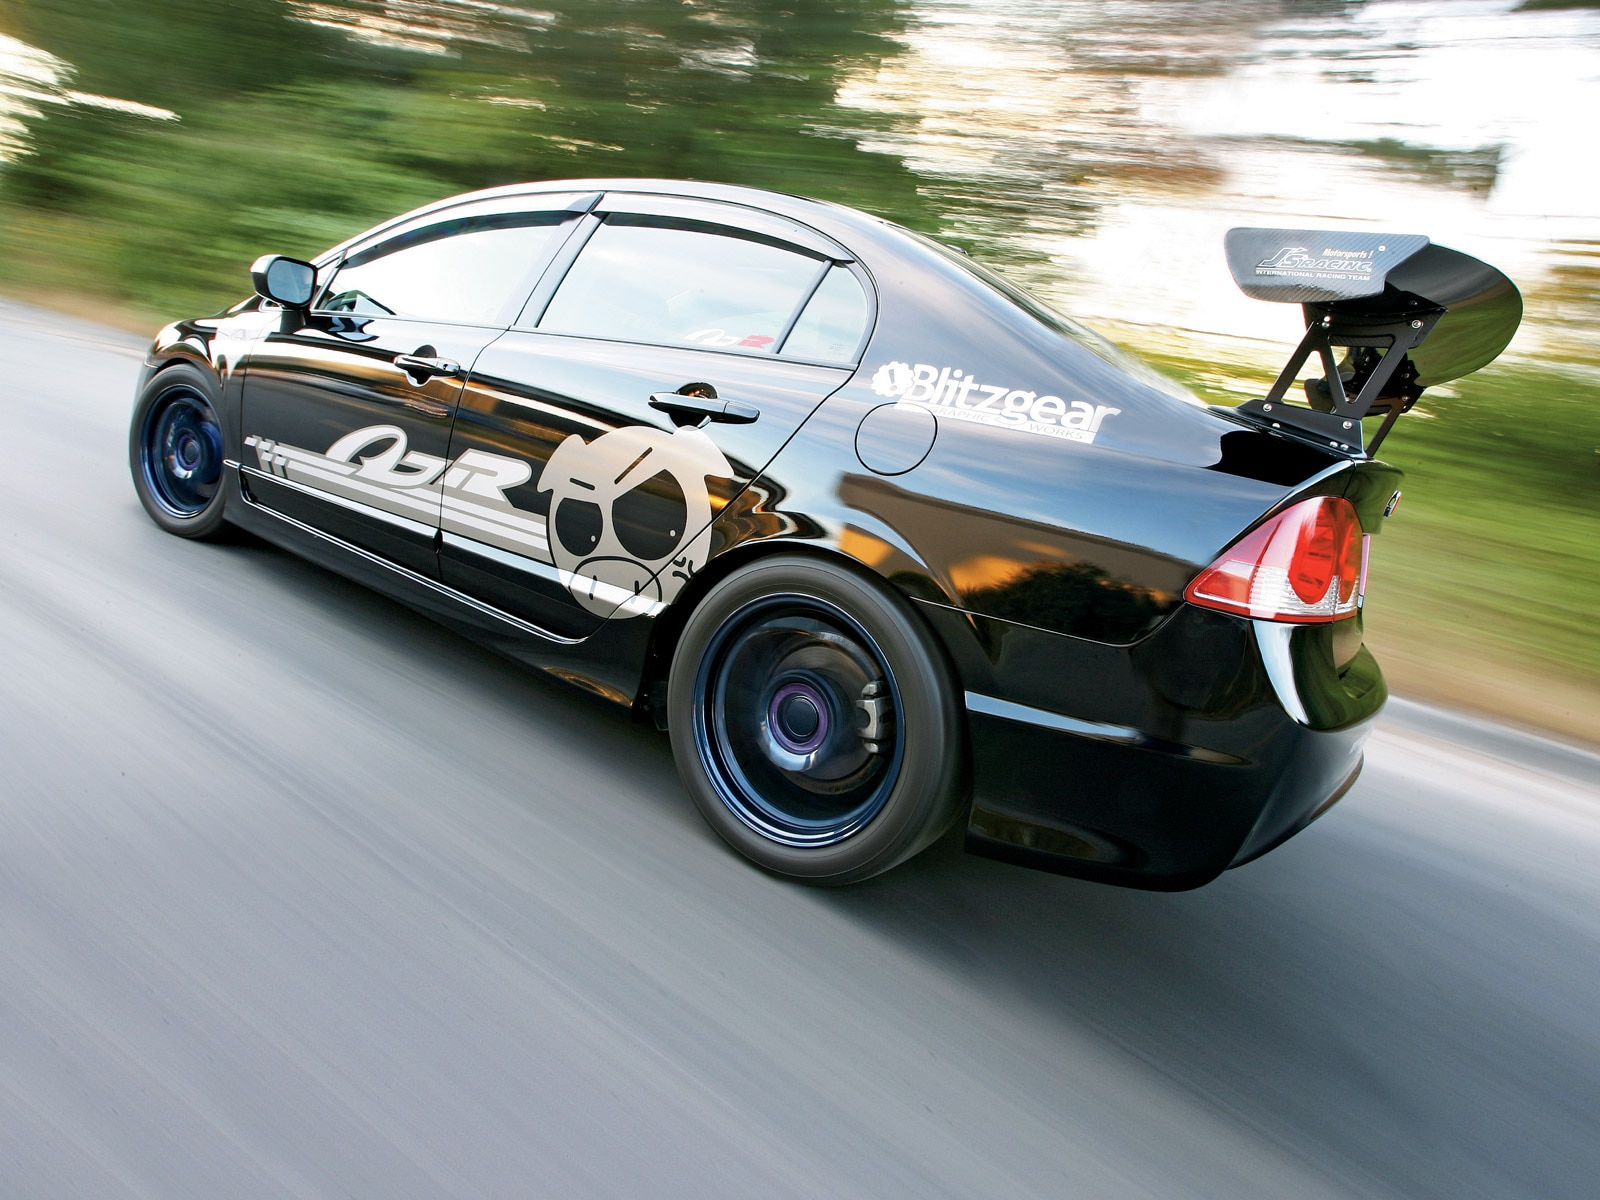 small resolution of 2008 acura csx type s the family car alternative compromise